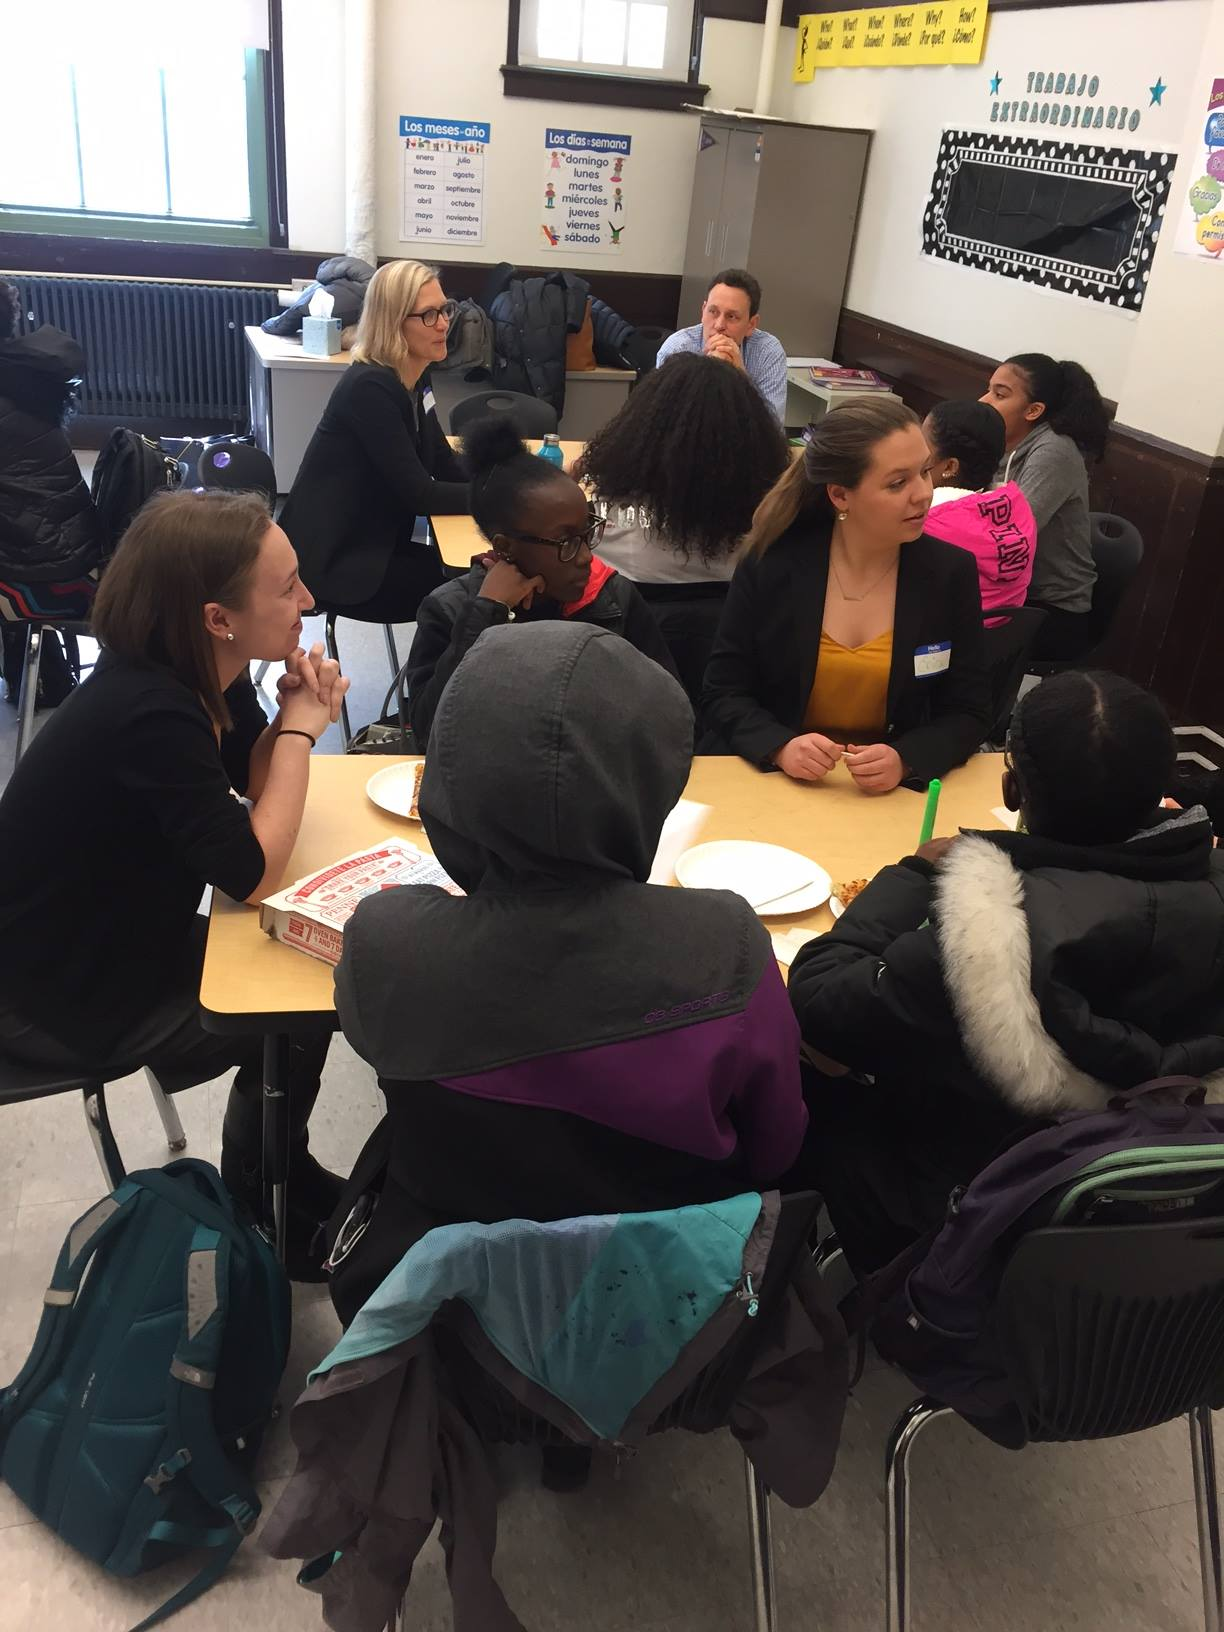 IIG Role Models meeting with Students at Fenway High School in Boston.